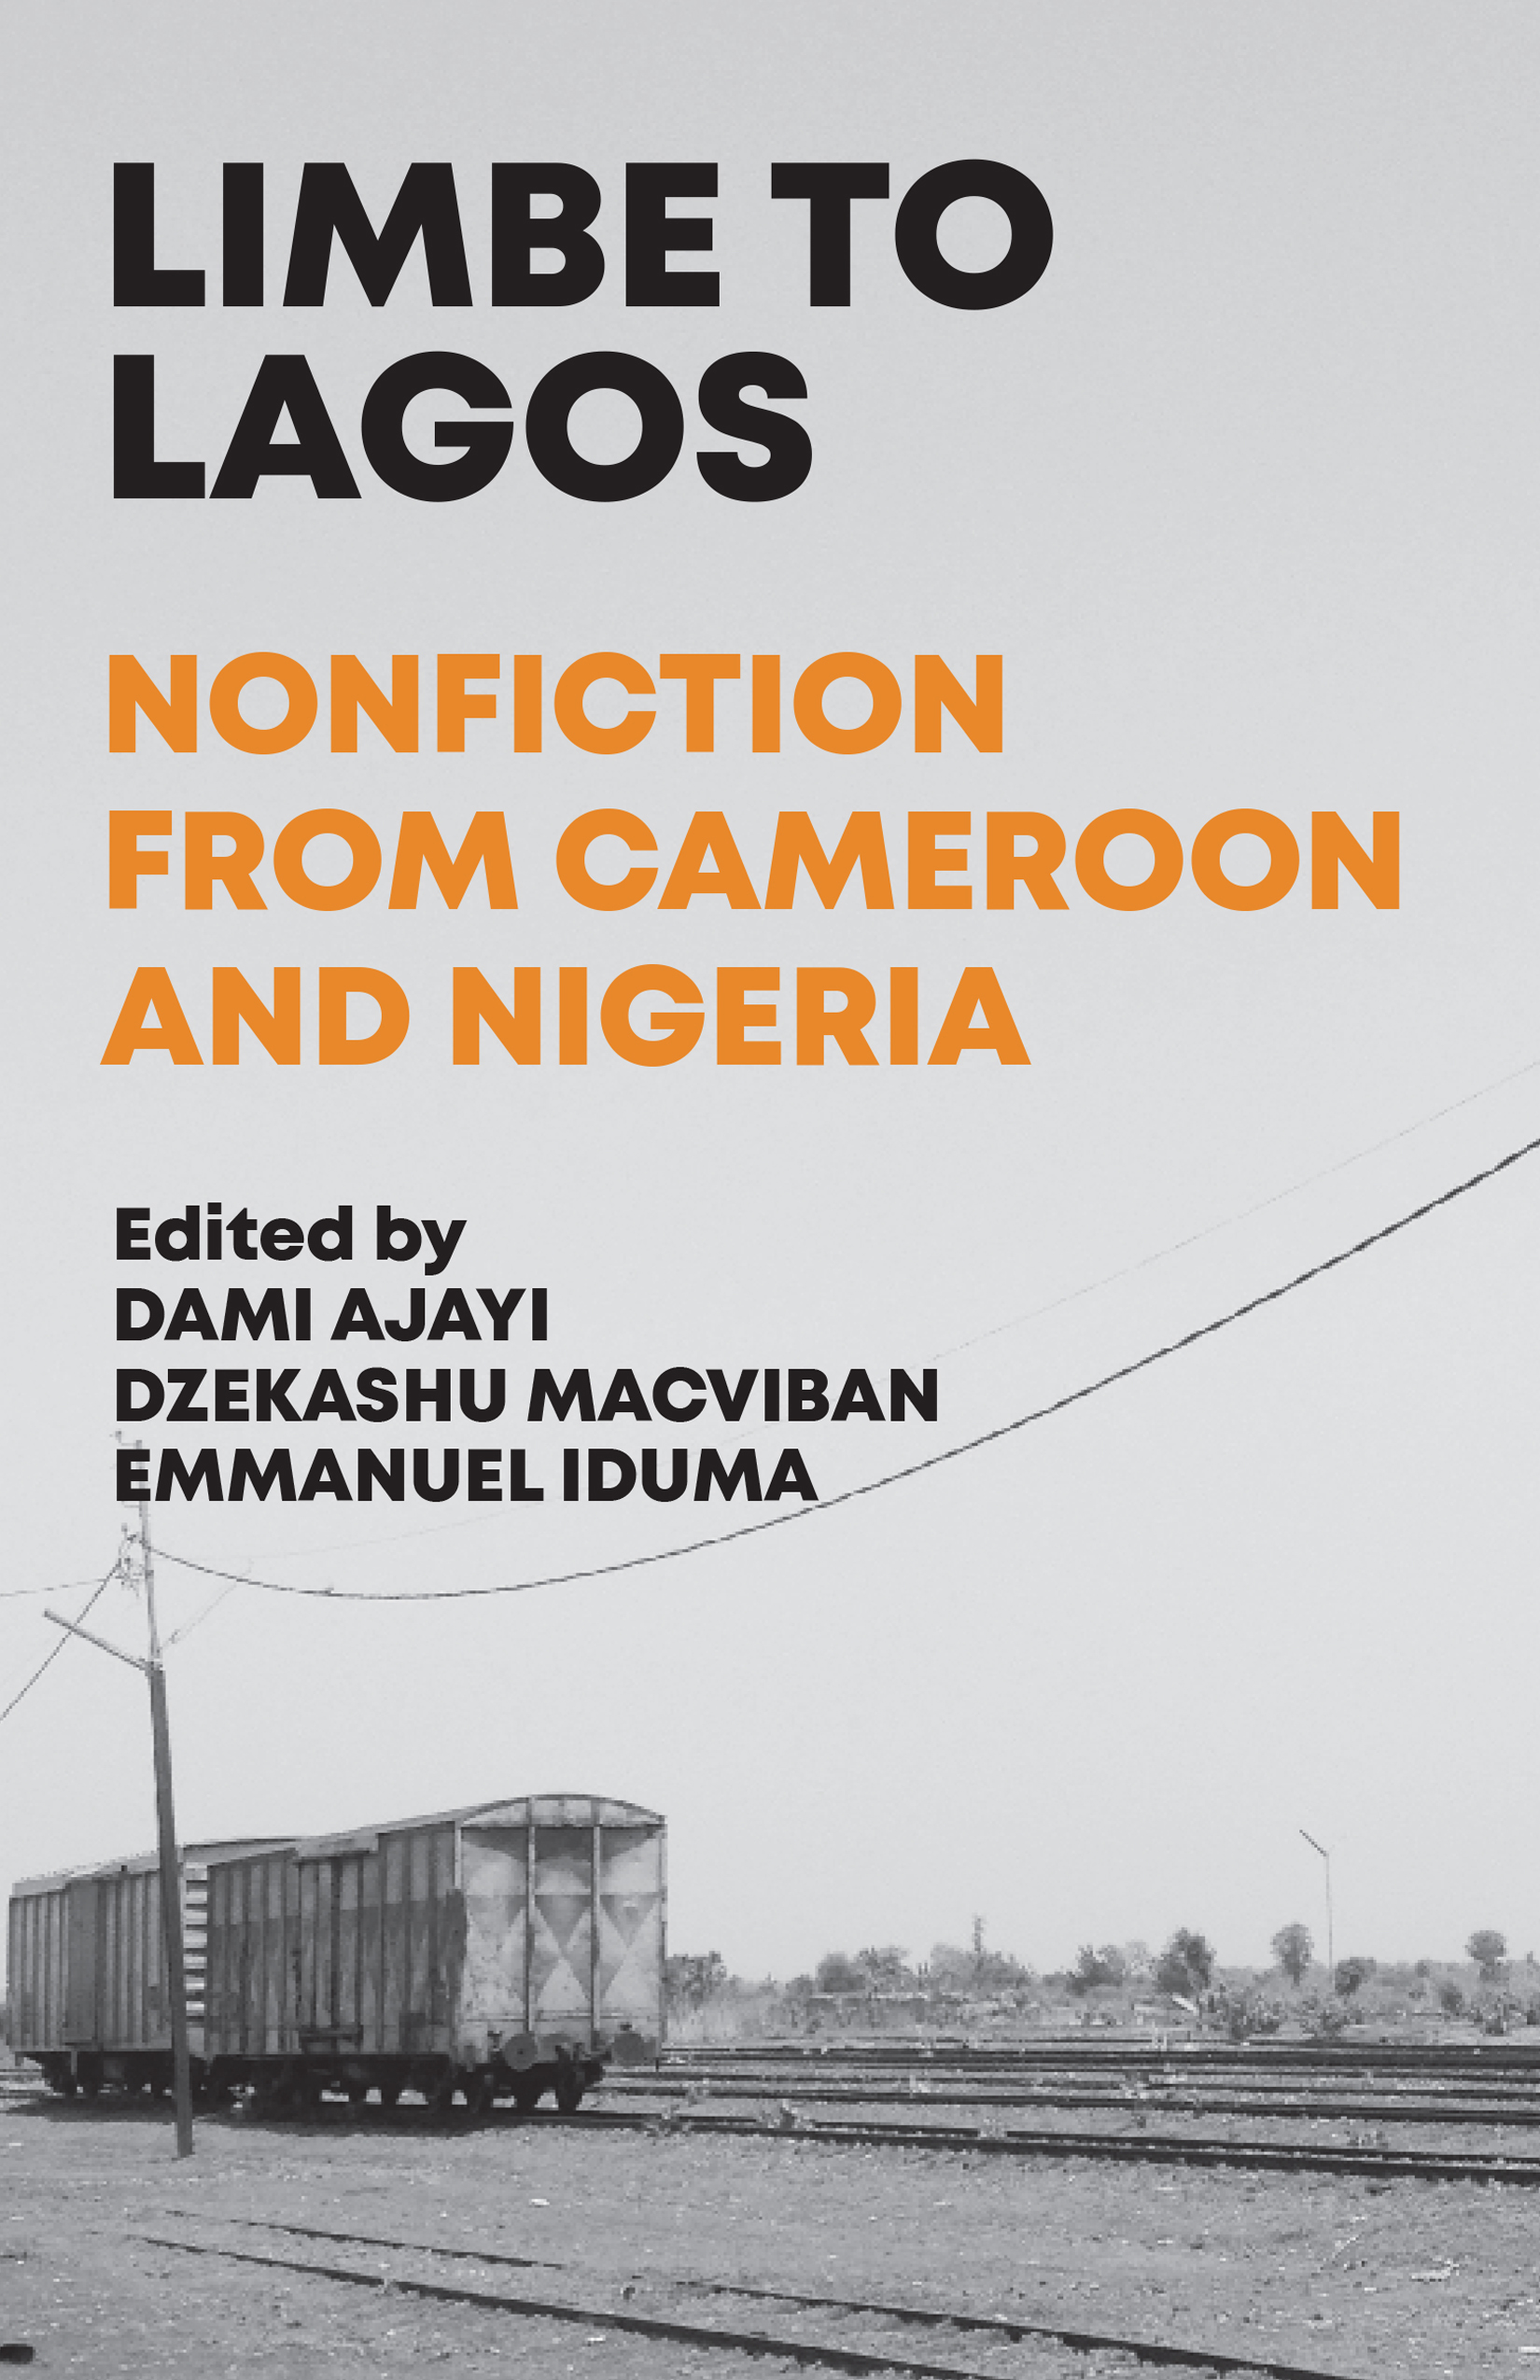 Limbe to Lagos: Nonfiction From Cameroon and Nigeria